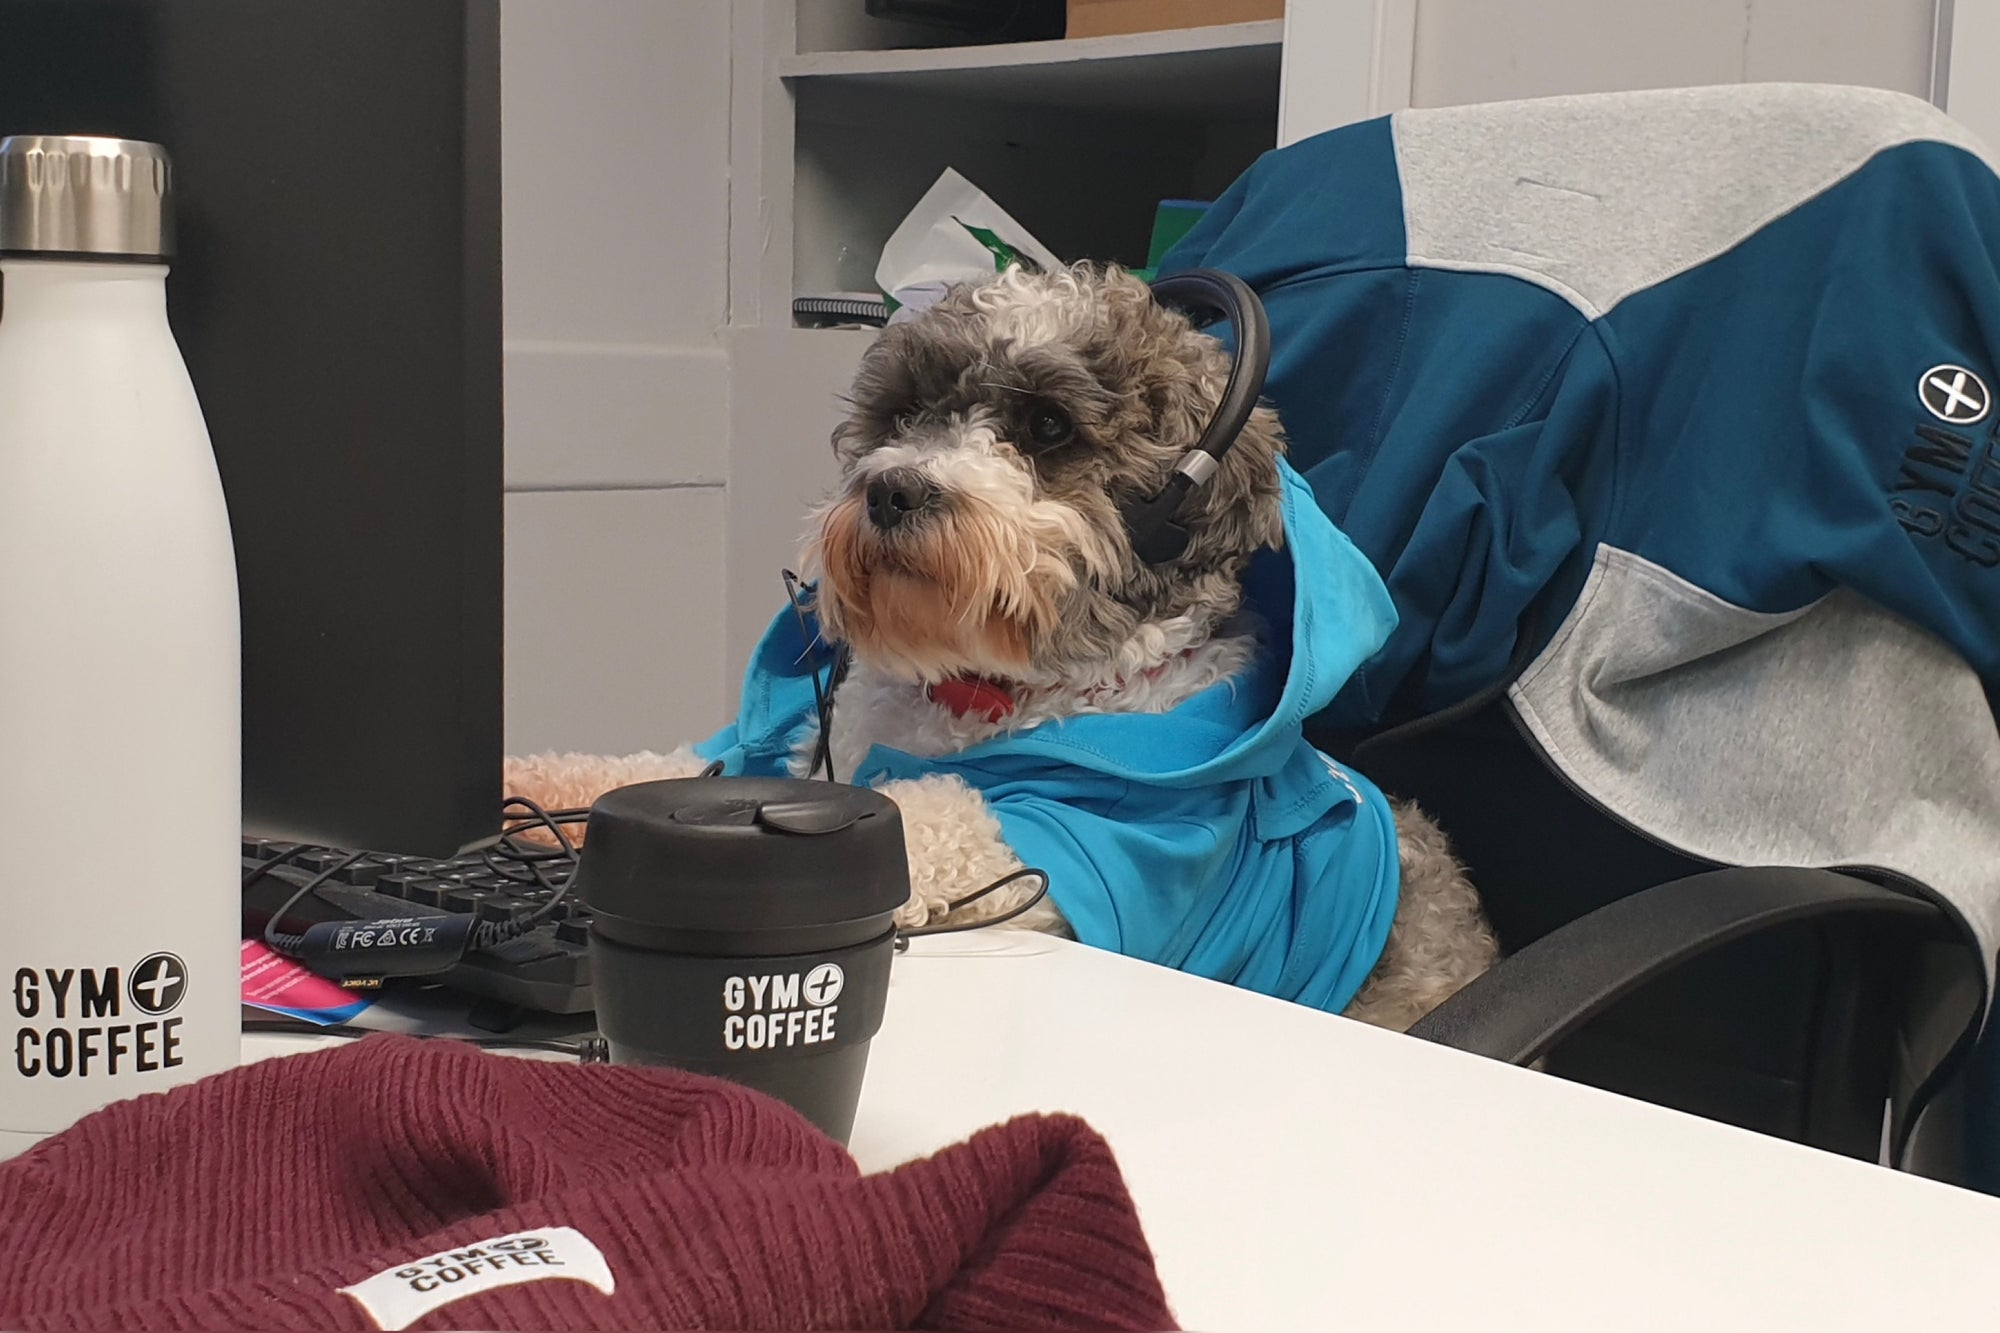 Gym+Coffee Office Dog Ned